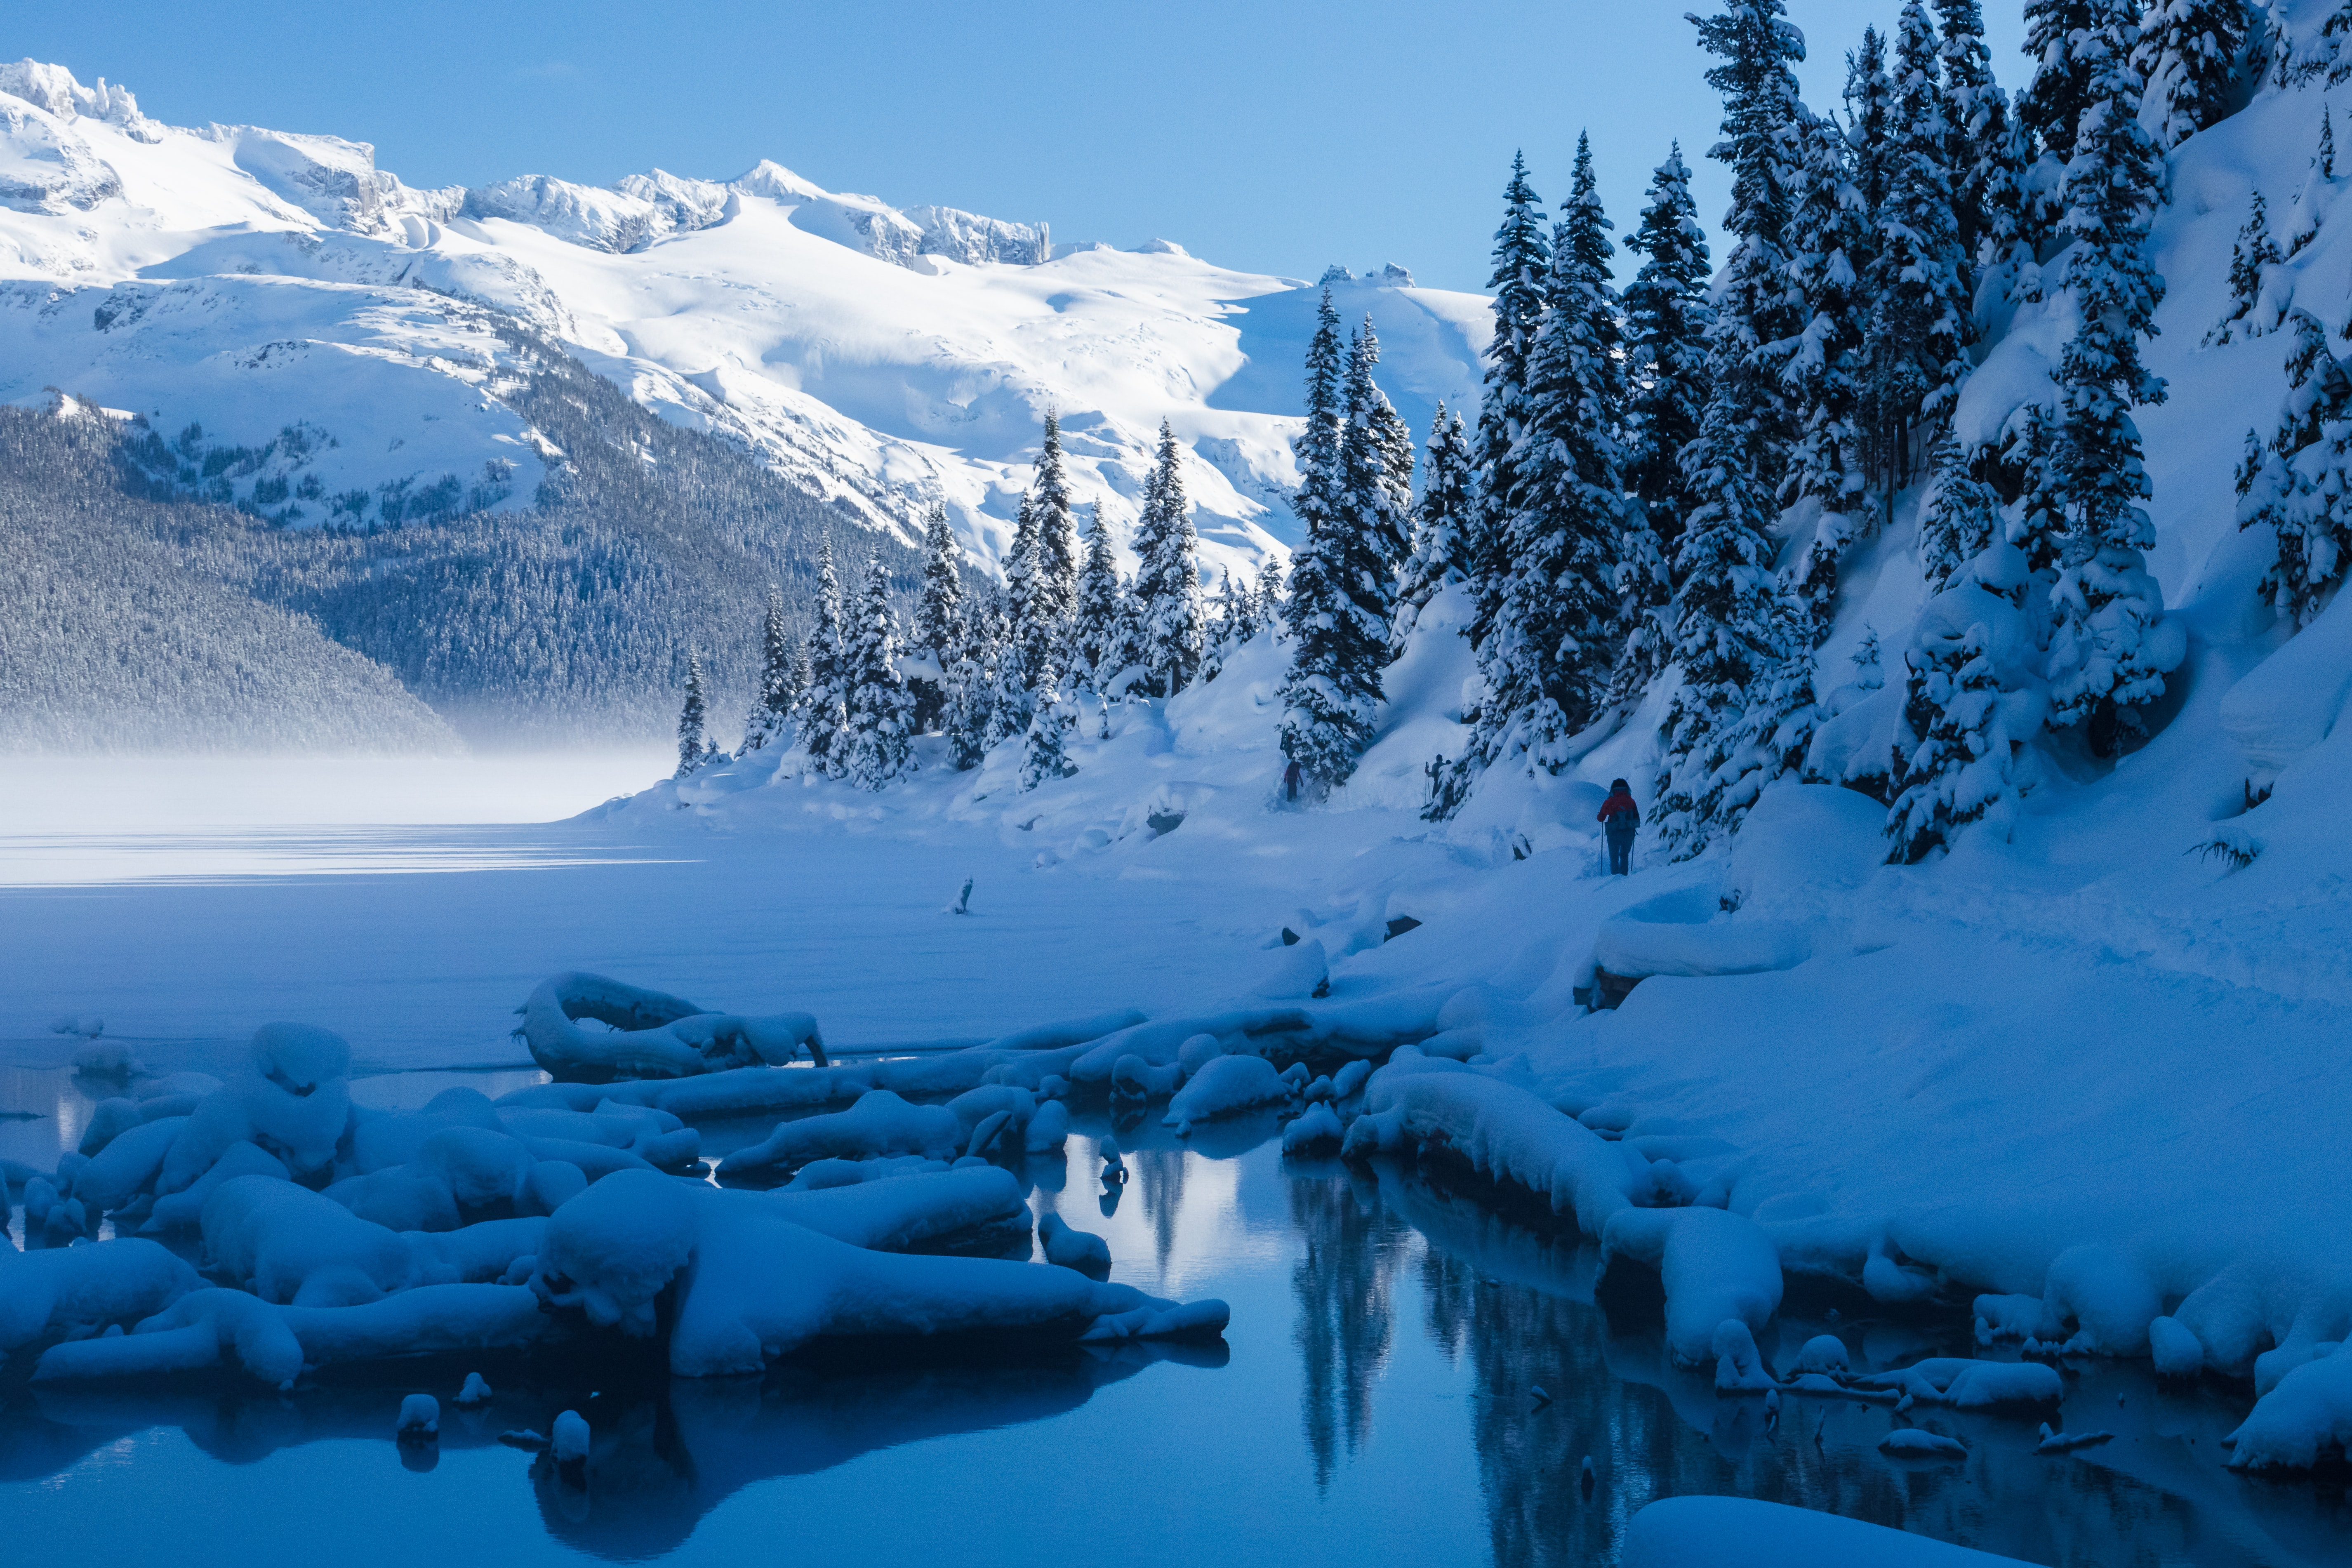 Download mobile wallpaper Landscape, Winter, Nature, Trees, Mountains, Snow, Lake for free.